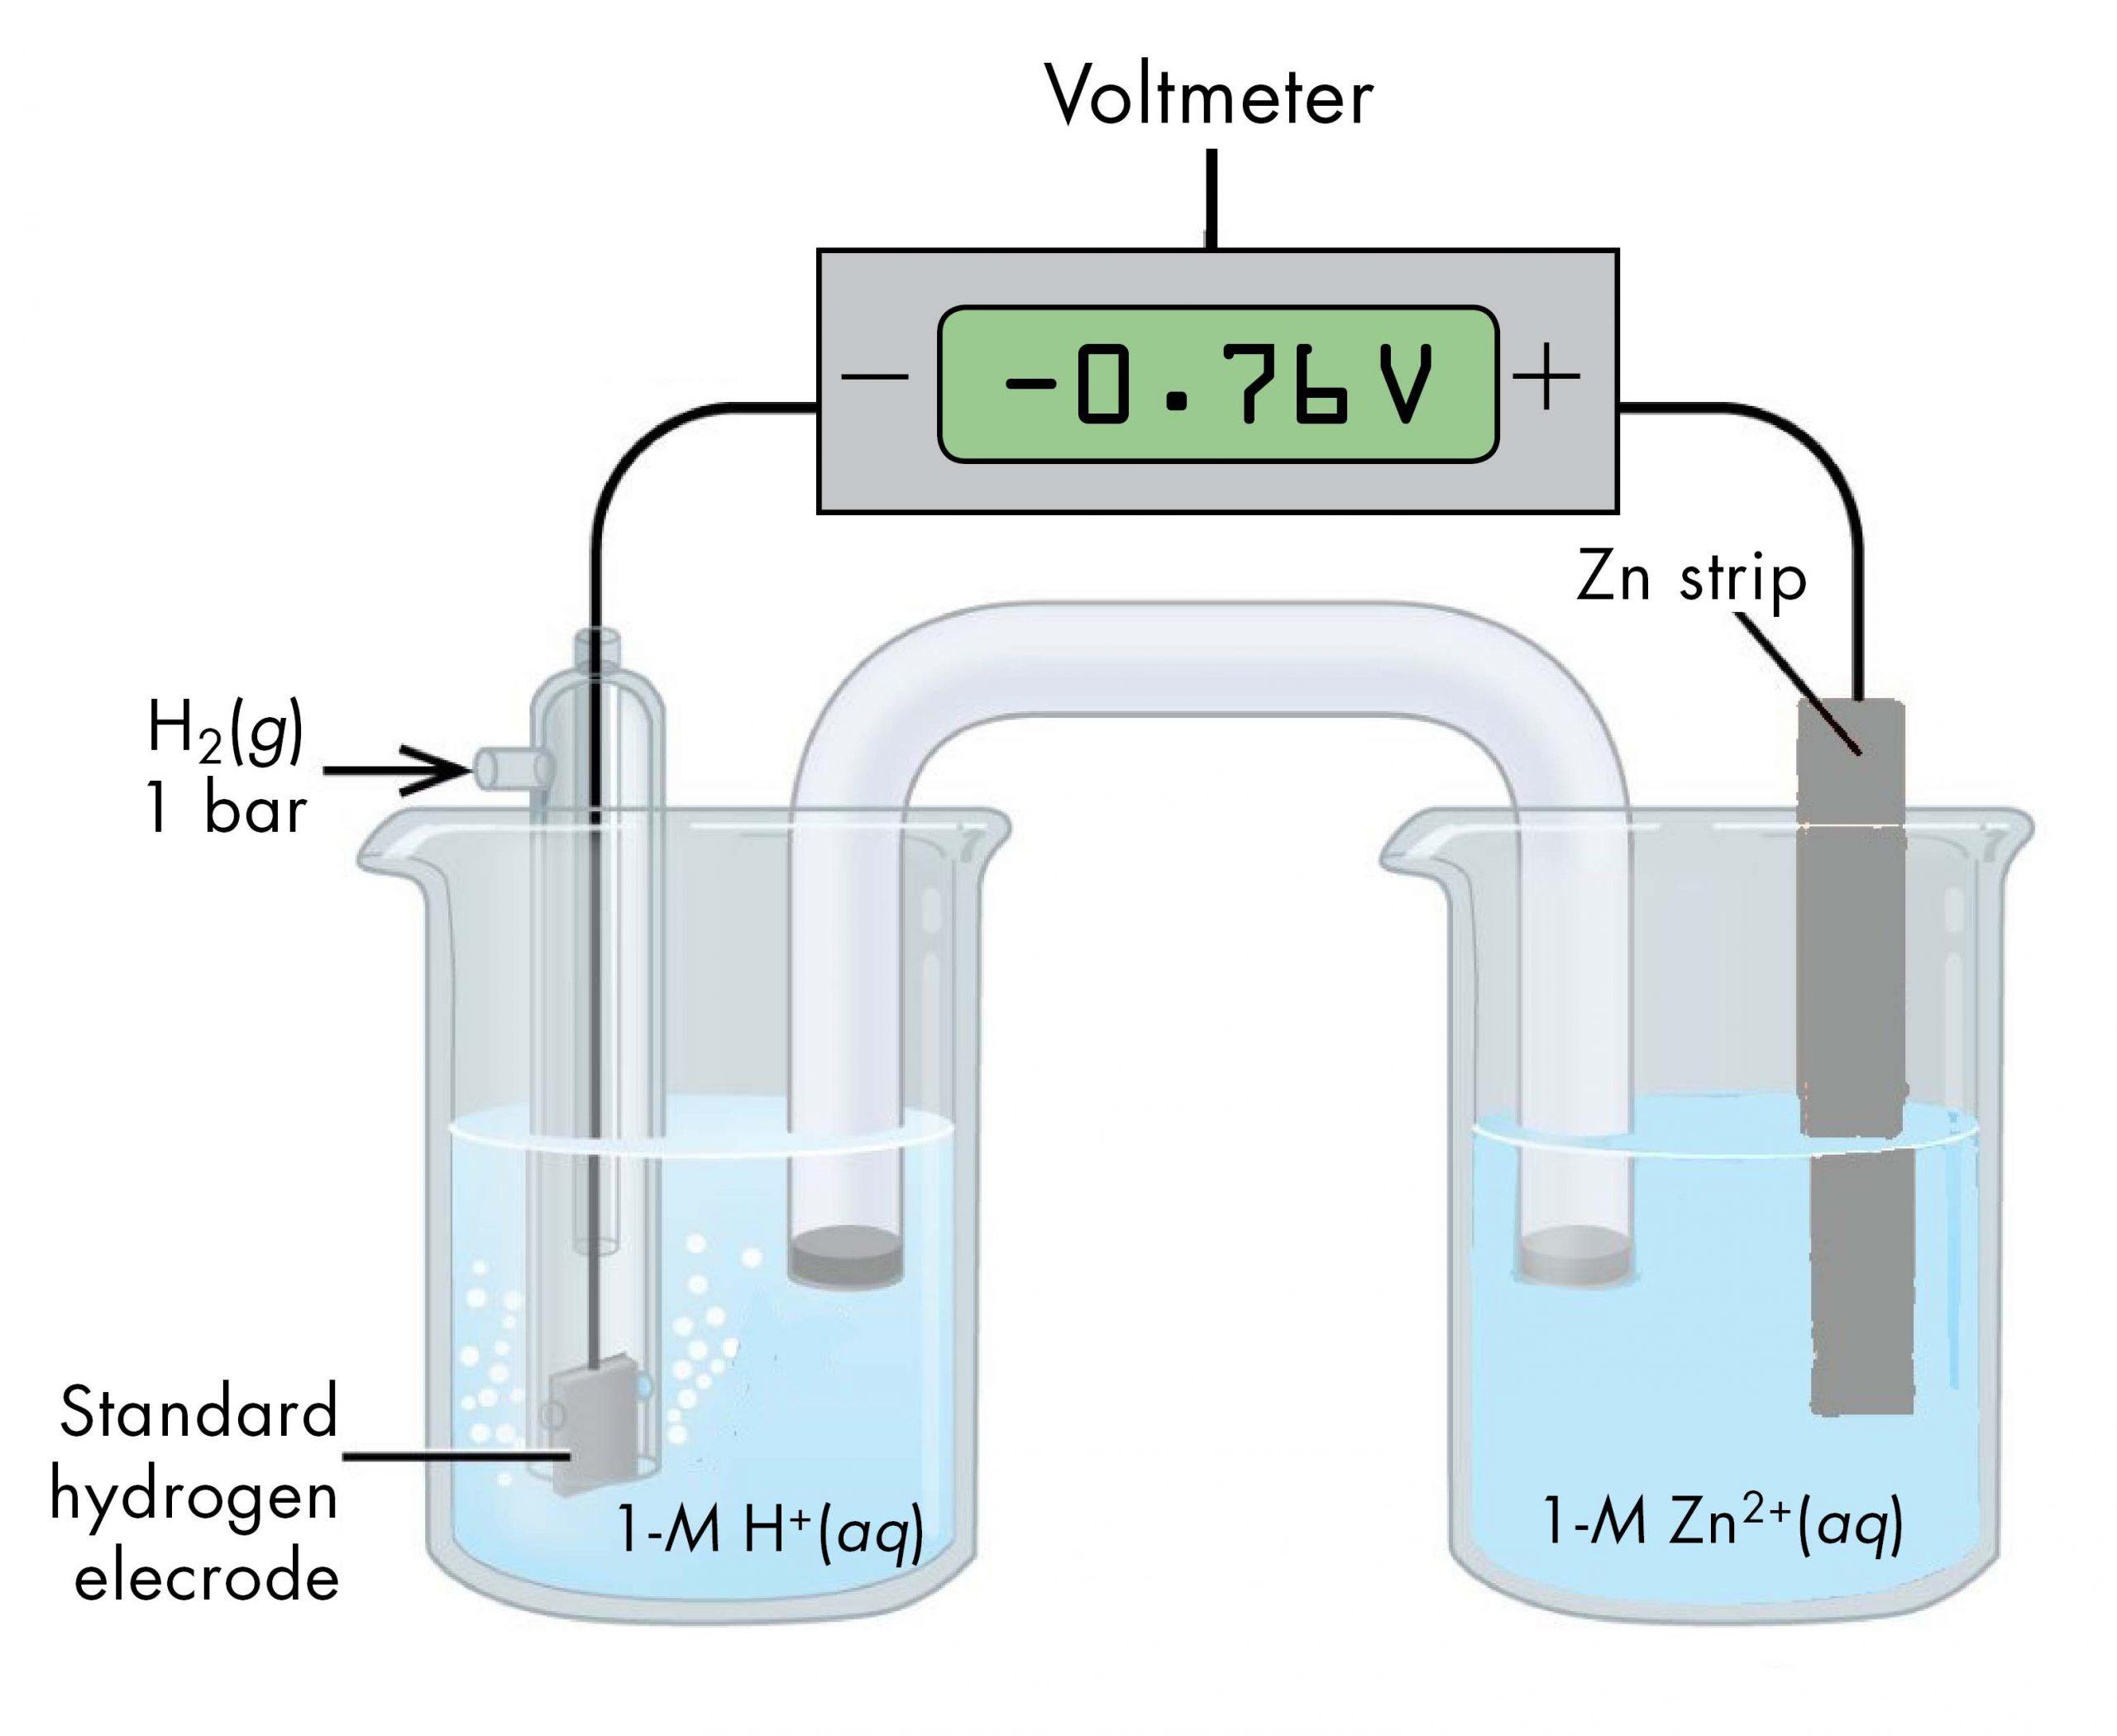 """This figure contains a diagram of an electrochemical cell. Two beakers are shown. Each is just over half full. The beaker on the left contains a clear, colorless solution which is labeled """"H N O subscript 3 ( a q )."""" The beaker on the right contains a clear, colorless solution which is labeled """"1 M H superscript plus ( a q )."""" A glass tube in the shape of an inverted U salt bridge connects the two beakers at the center of the diagram. The tube contents are colorless. The ends of the tubes are beneath the surface of the solutions in the beakers and a small grey plug is present at each end of the tube. The beaker on the left has a glass tube partially submerged in the liquid. Bubbles are rising from a grey square, labeled """"Standard hydrogen electrode"""" at the bottom of the tube. A black wire extends from the grey square up the interior of the tube through a small port at the top to a rectangle with a digital readout of """"negative 0.76 V"""" which is labeled """"Voltmeter."""" There is a minus sign where the wire connects to the voltmeter. A second small port extends out the top of the tube to the left. An arrow points to the port opening from the left. The base of this arrow is labeled """"H subscript 2 ( g ) 1 bar."""" The beaker on the right has a gray strip that is labeled """"Z n strip."""" A wire extends from the top of this strip to the voltmeter where it connects to the positive terminal. The solution in the beaker on the right has the label """"1-M Z n superscript 2 superscript plus ( a q )"""""""